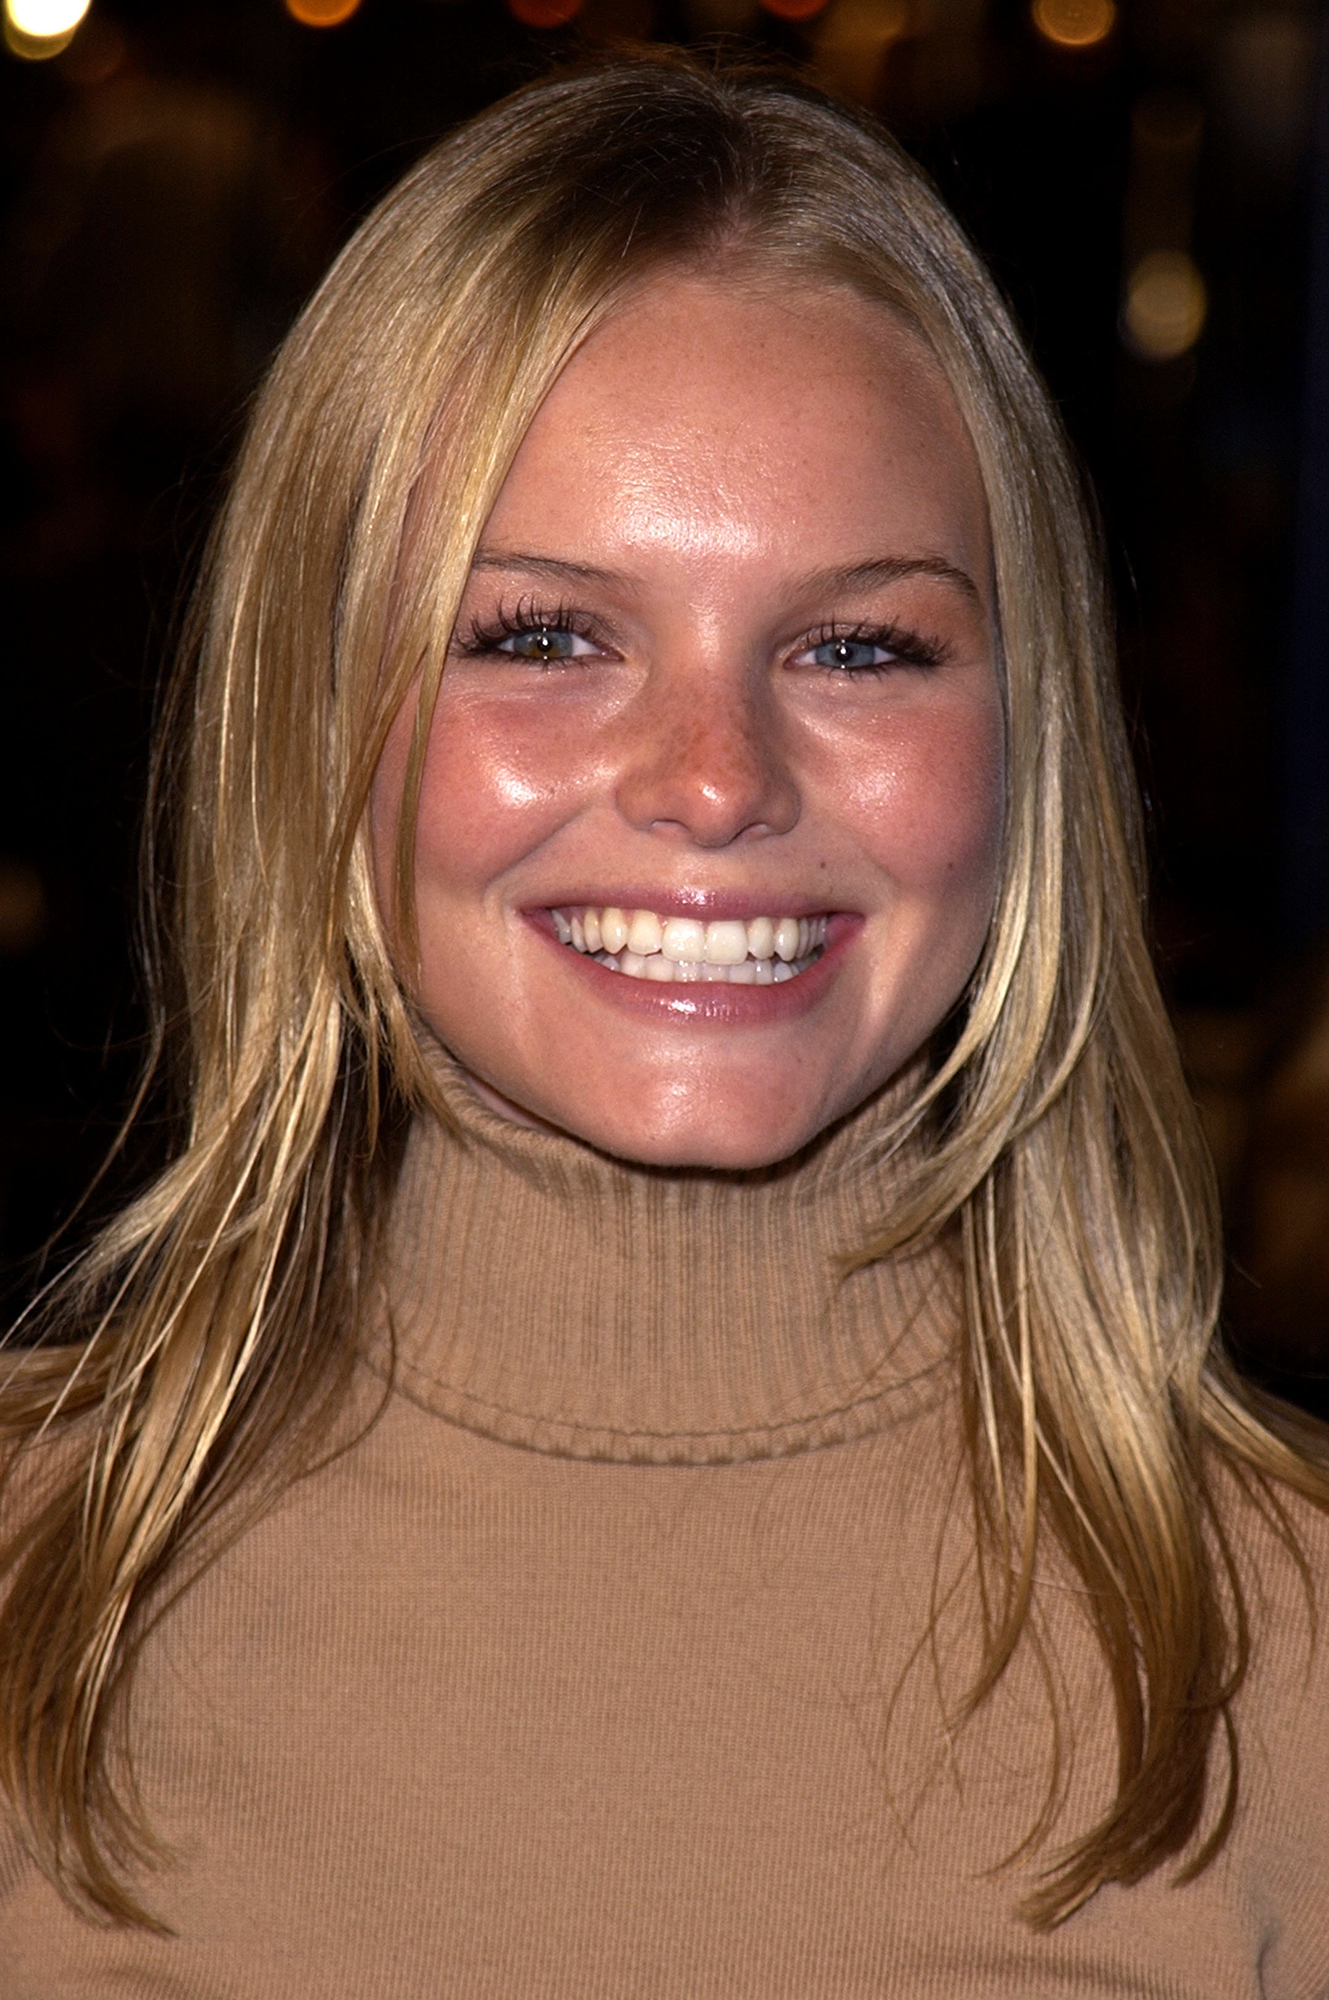 See Birthday Girl Kate Bosworth's Best Beauty Moments - At the L.A. premiere of K-Pax in October 2001, the SoCal native was giving Us all kinds of surfer vibes with her freckled complexion and sunny strands.